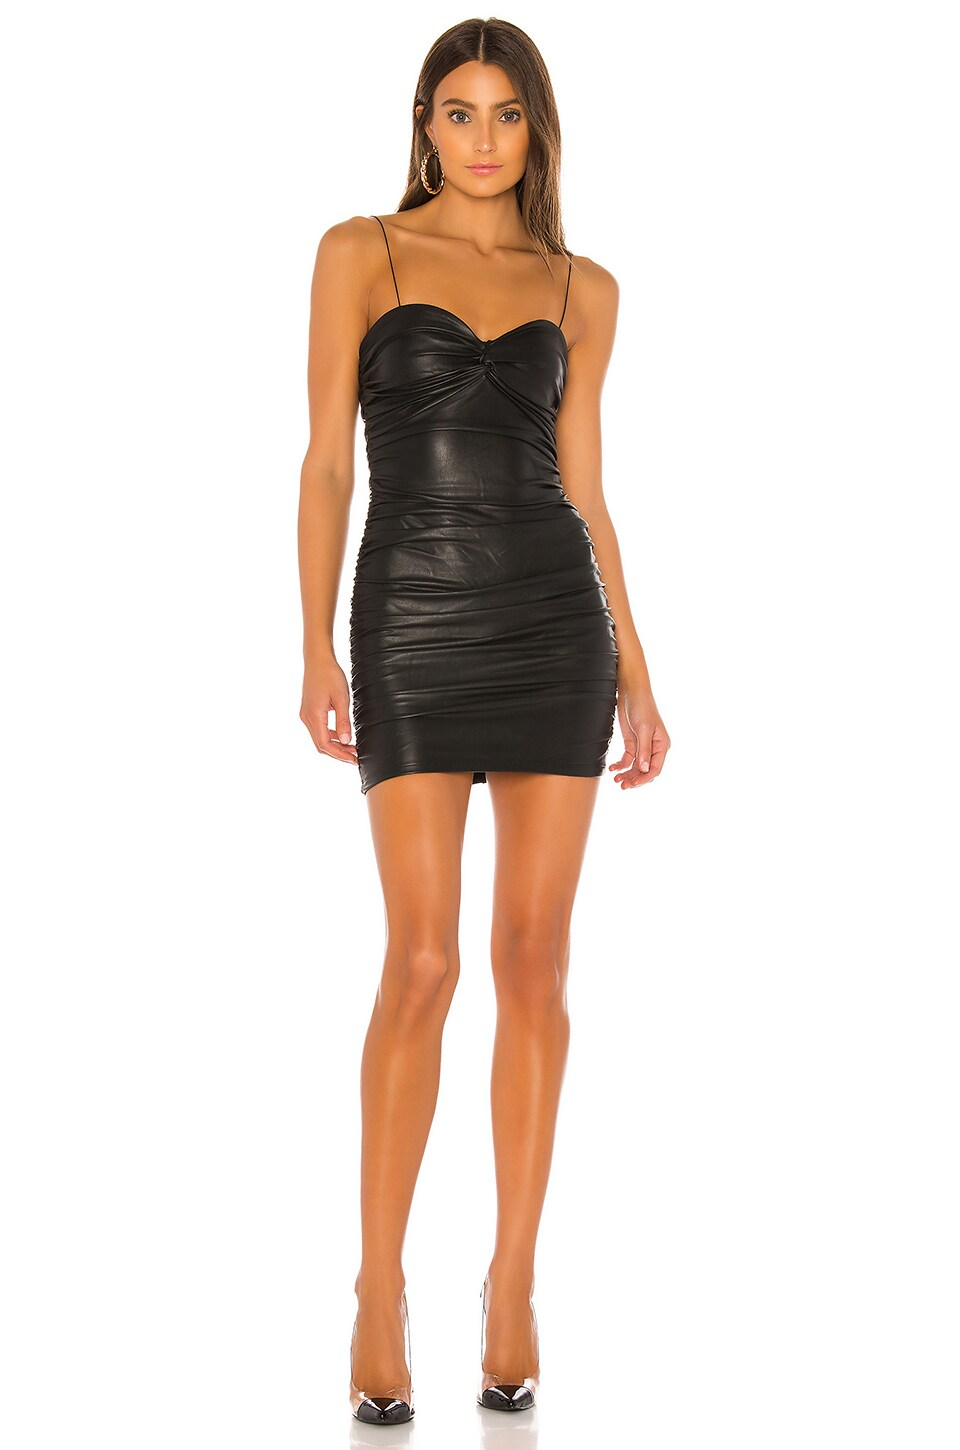 h:ours Masa Mini Dress in Black